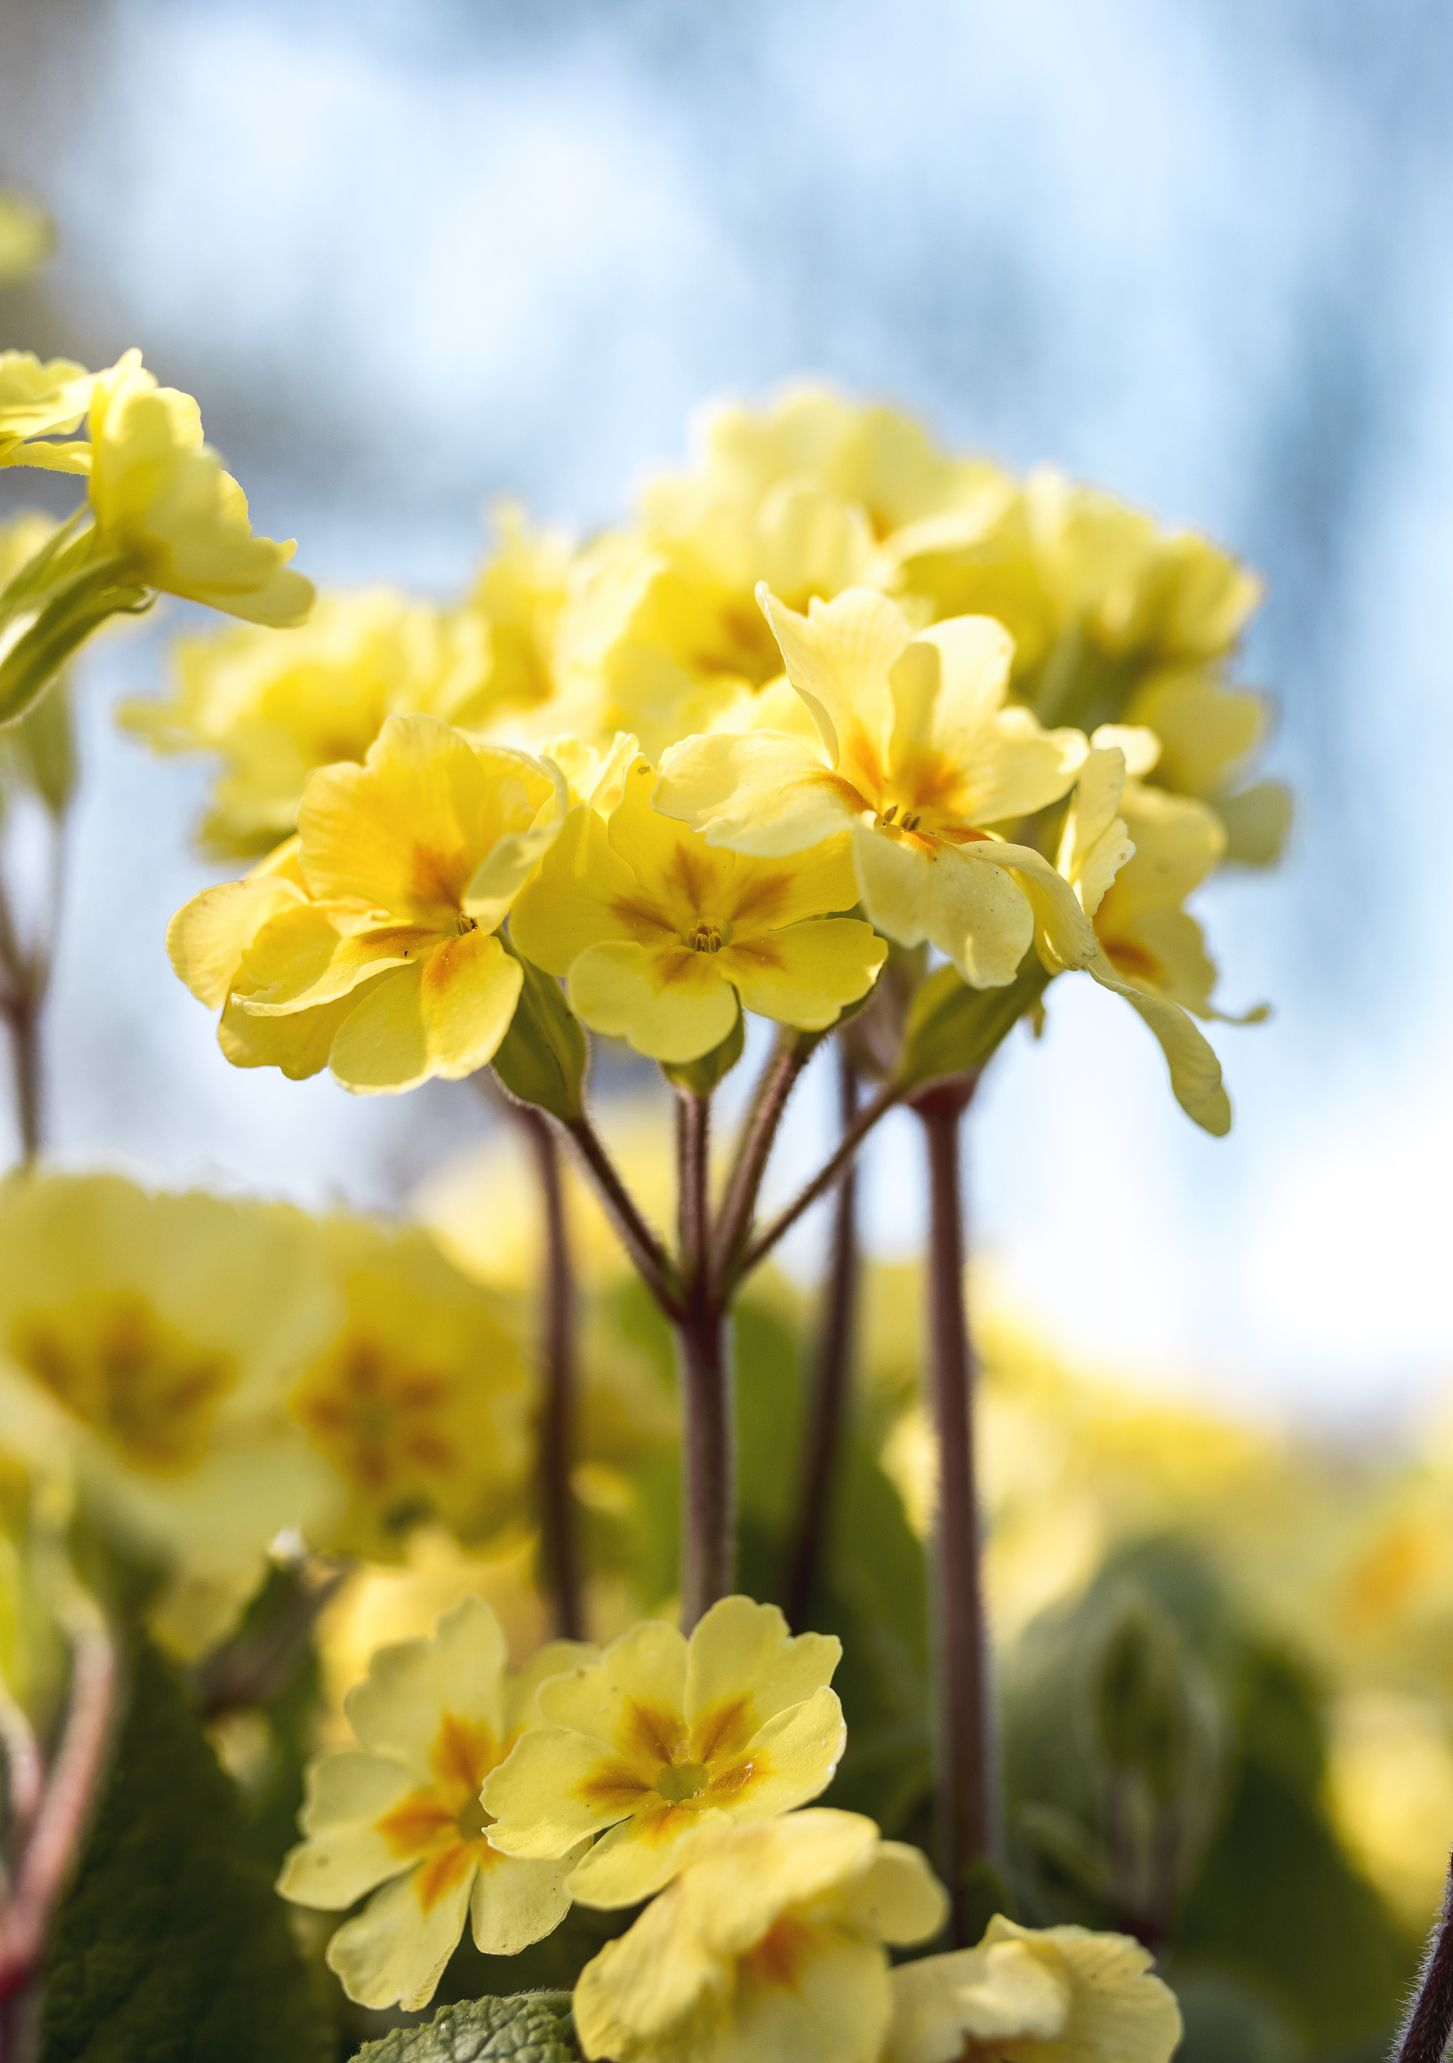 15 Best Plants That Bloom In Winter Flowers That Develop In The Cold